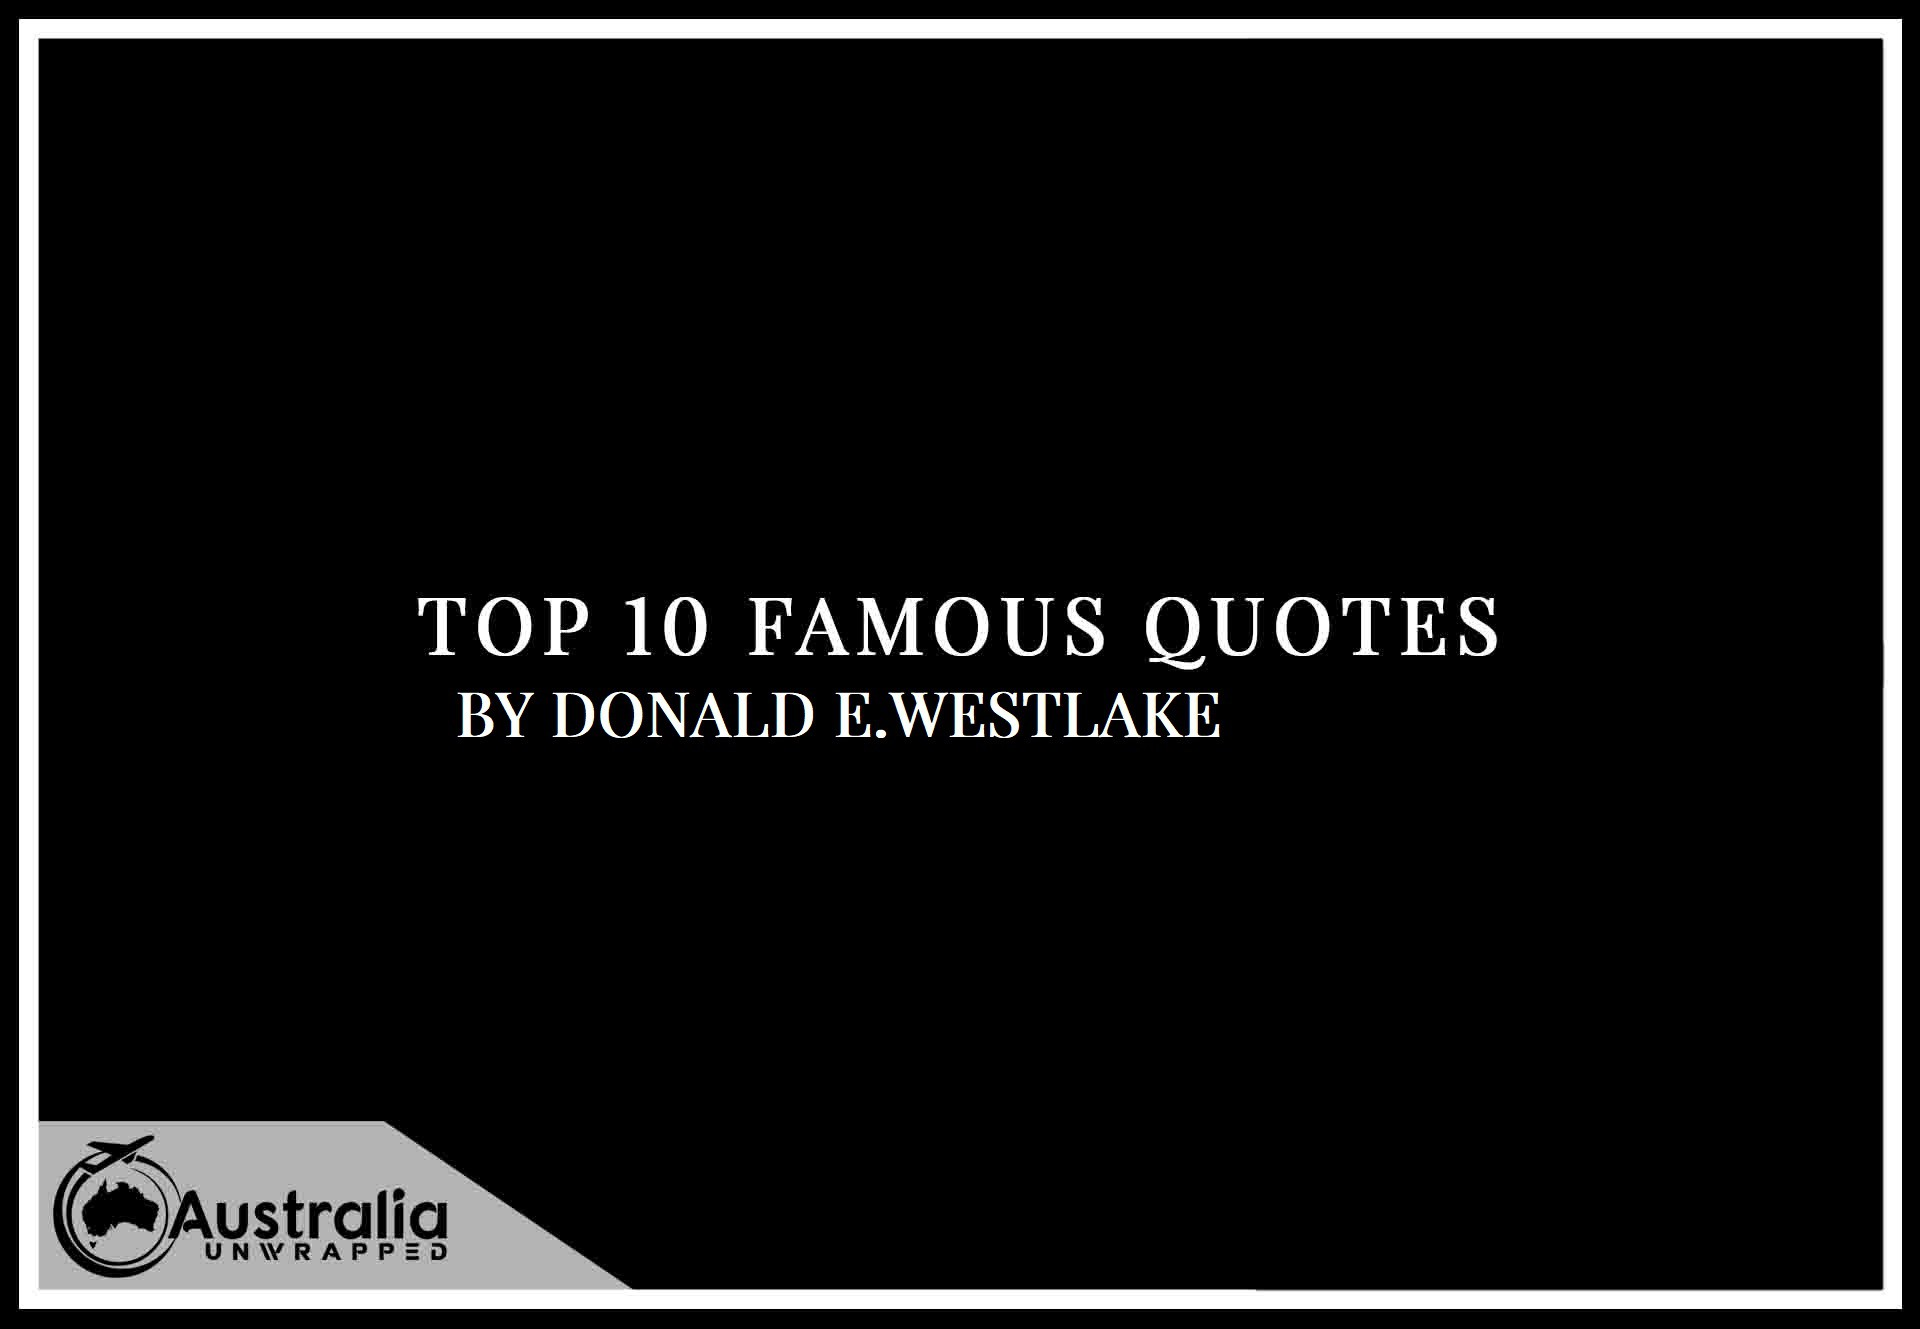 Top 10 Famous Quotes by Author Donald E. Westlake